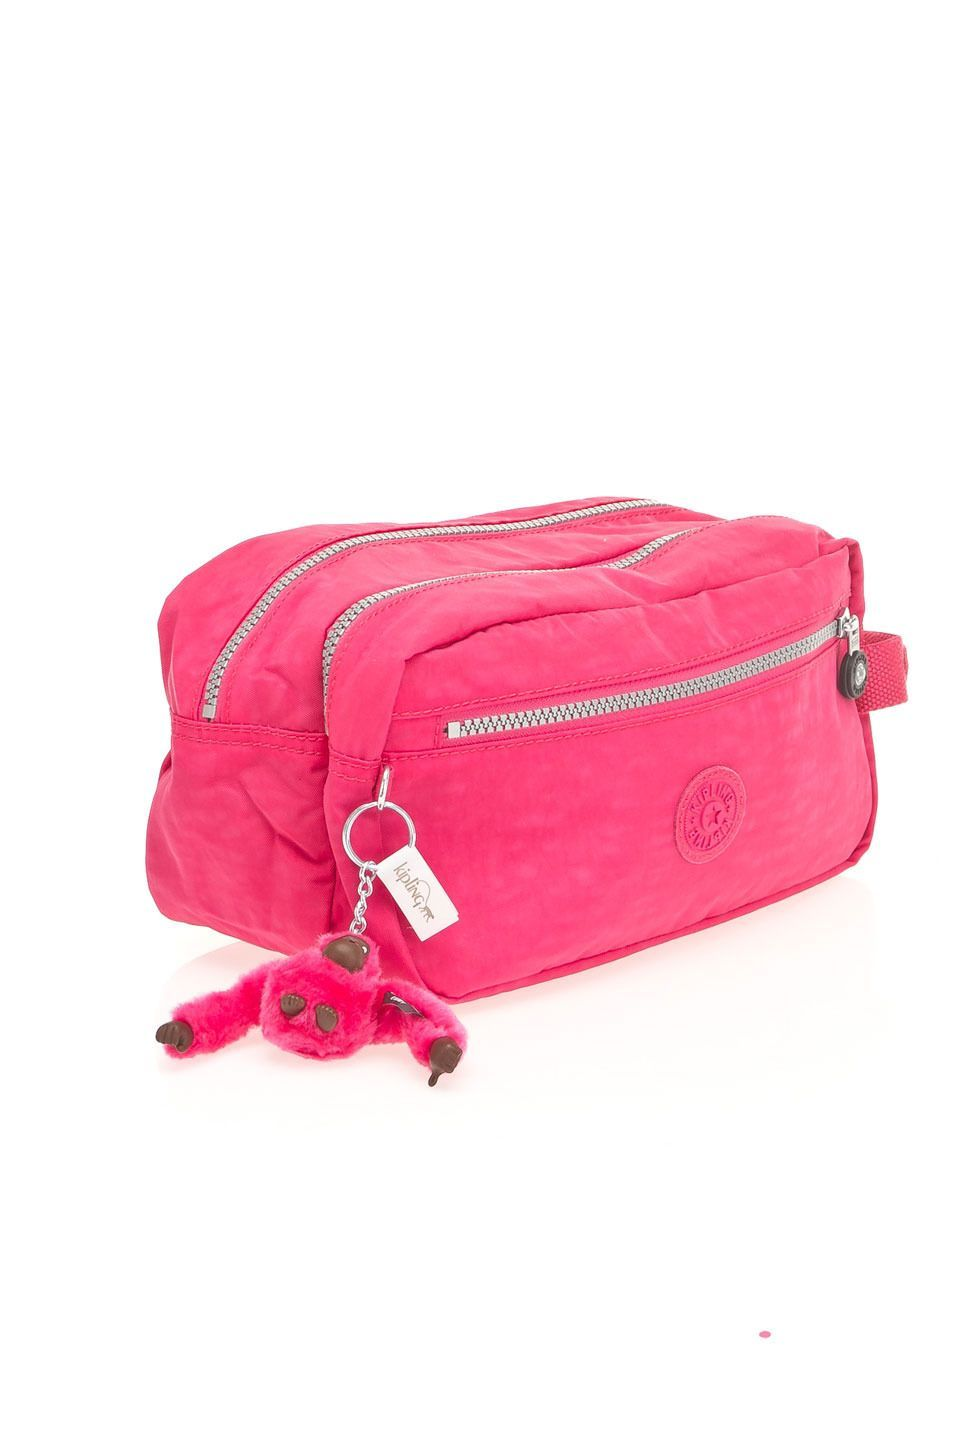 laest technology perfect quality best choice Kipling Agot Large Toiletry Bag in Vibrant Pink - Beyond the ...